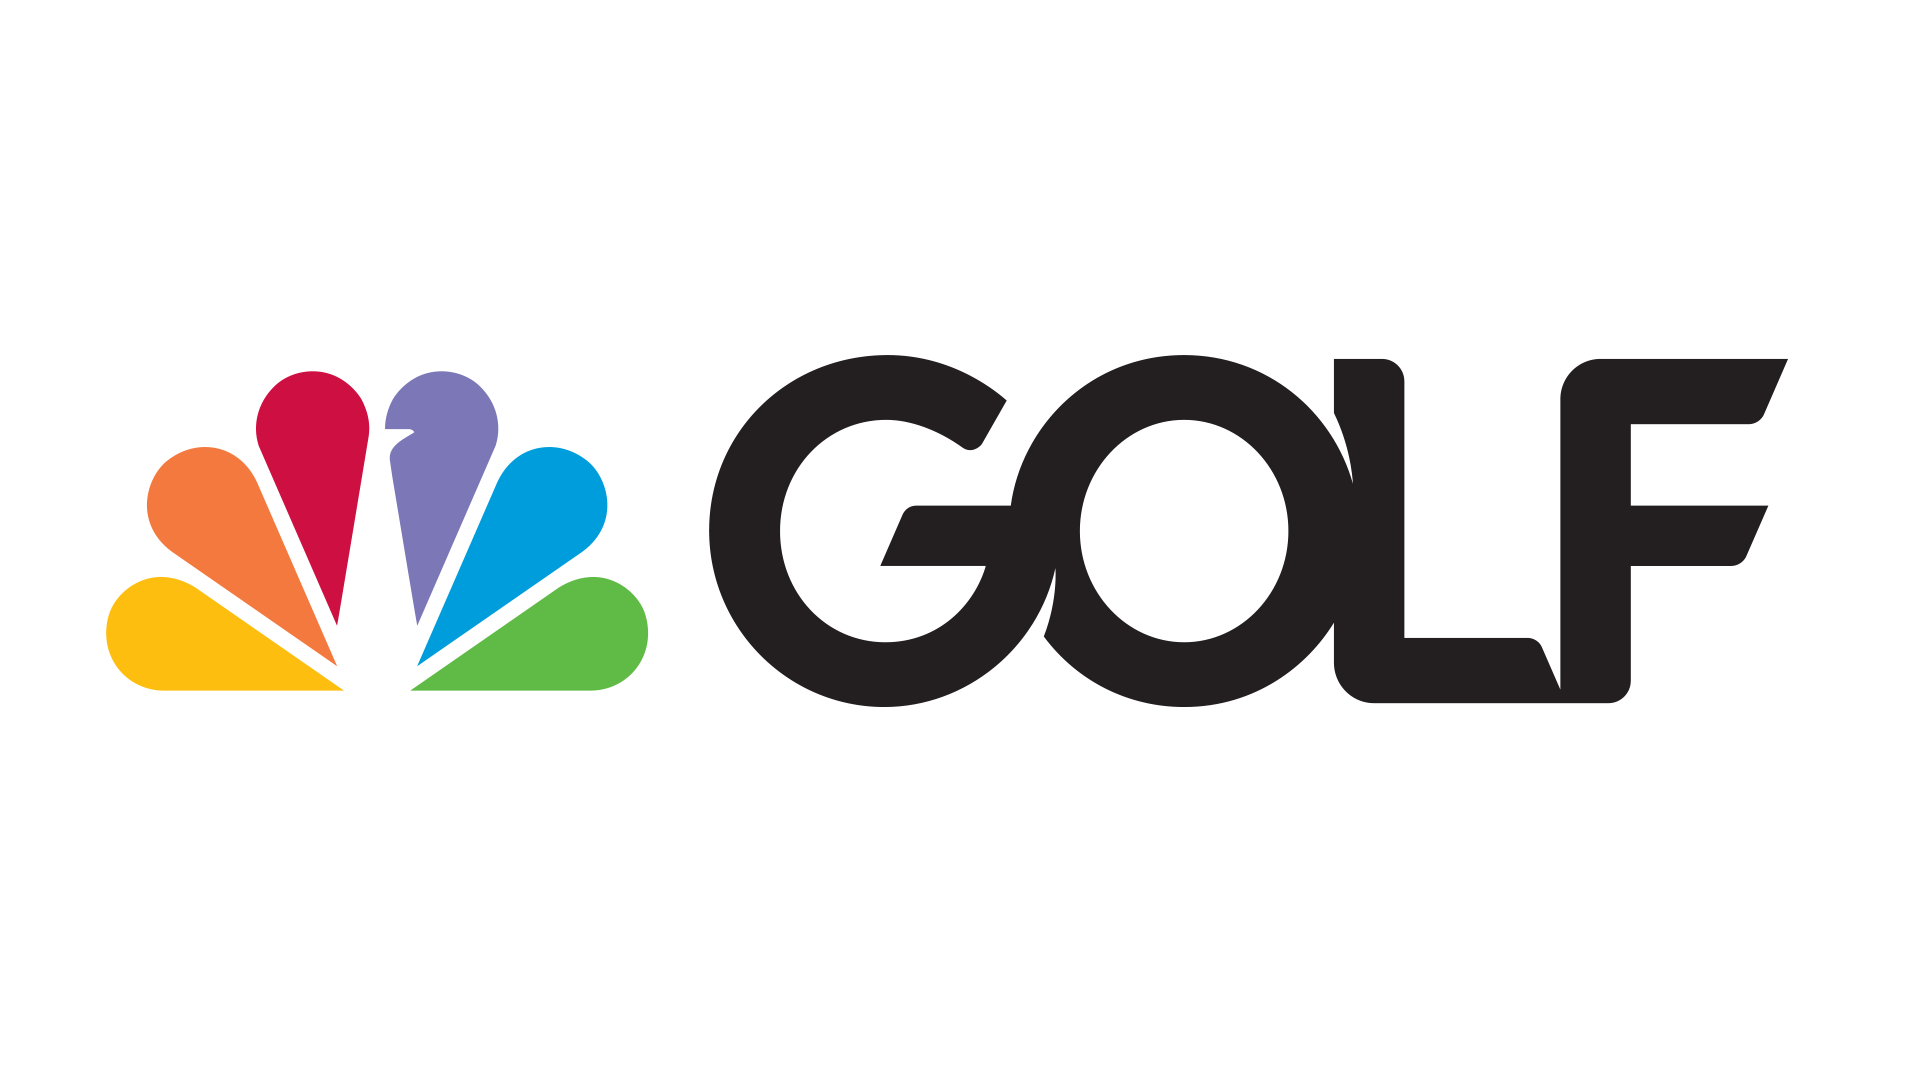 30+ HOURS OF GOLF CENTRAL LIVE FROM THE PGA CHAMPIONSHIP & LPGA PURE SILK CHAMPIONSHIP HIGHLIGHT THIS WEEK'S COVERAGE ON GOLF CHANNEL - NBC Sports Pressbox